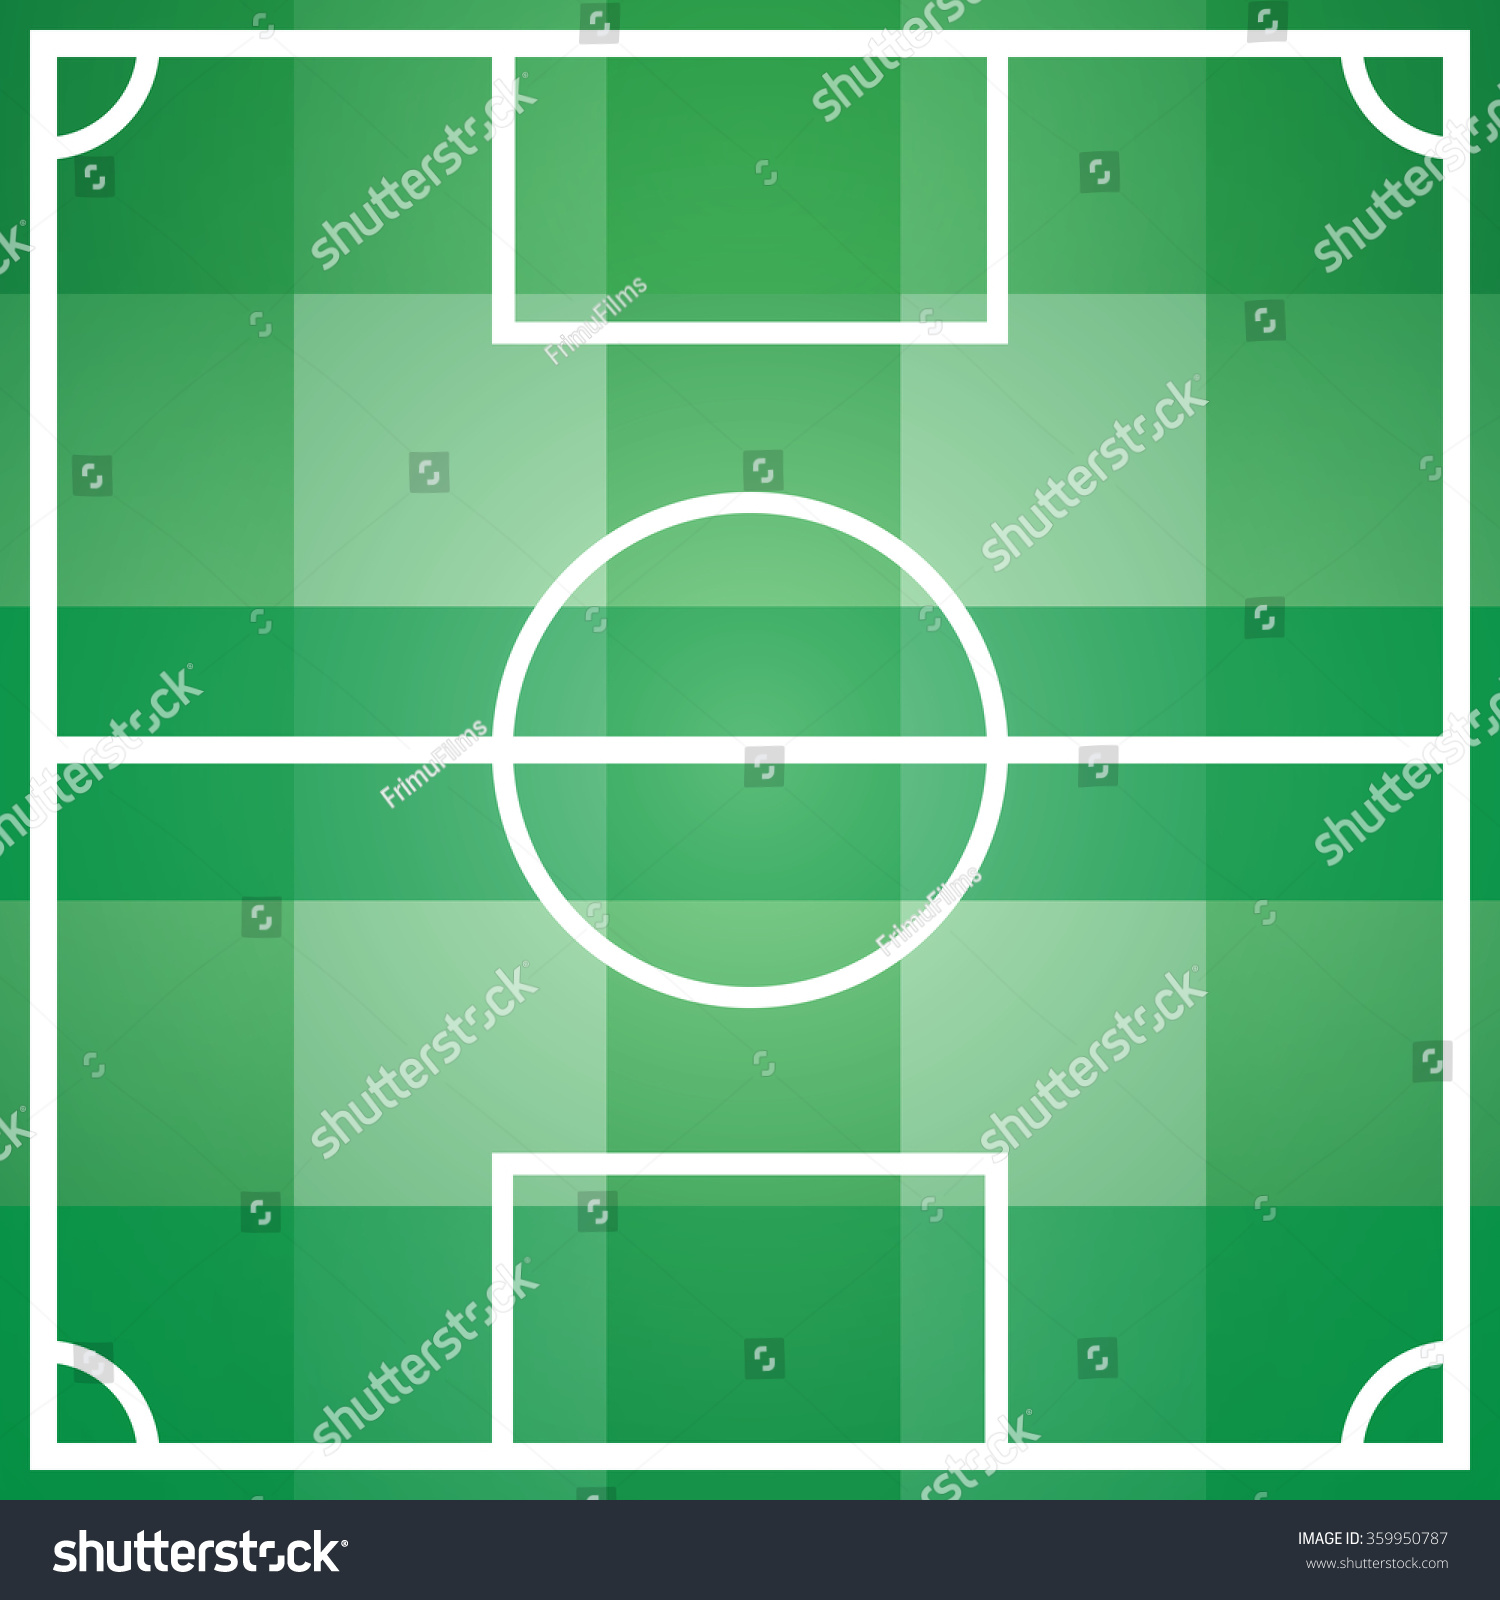 soccer football game field template all stock illustration 359950787